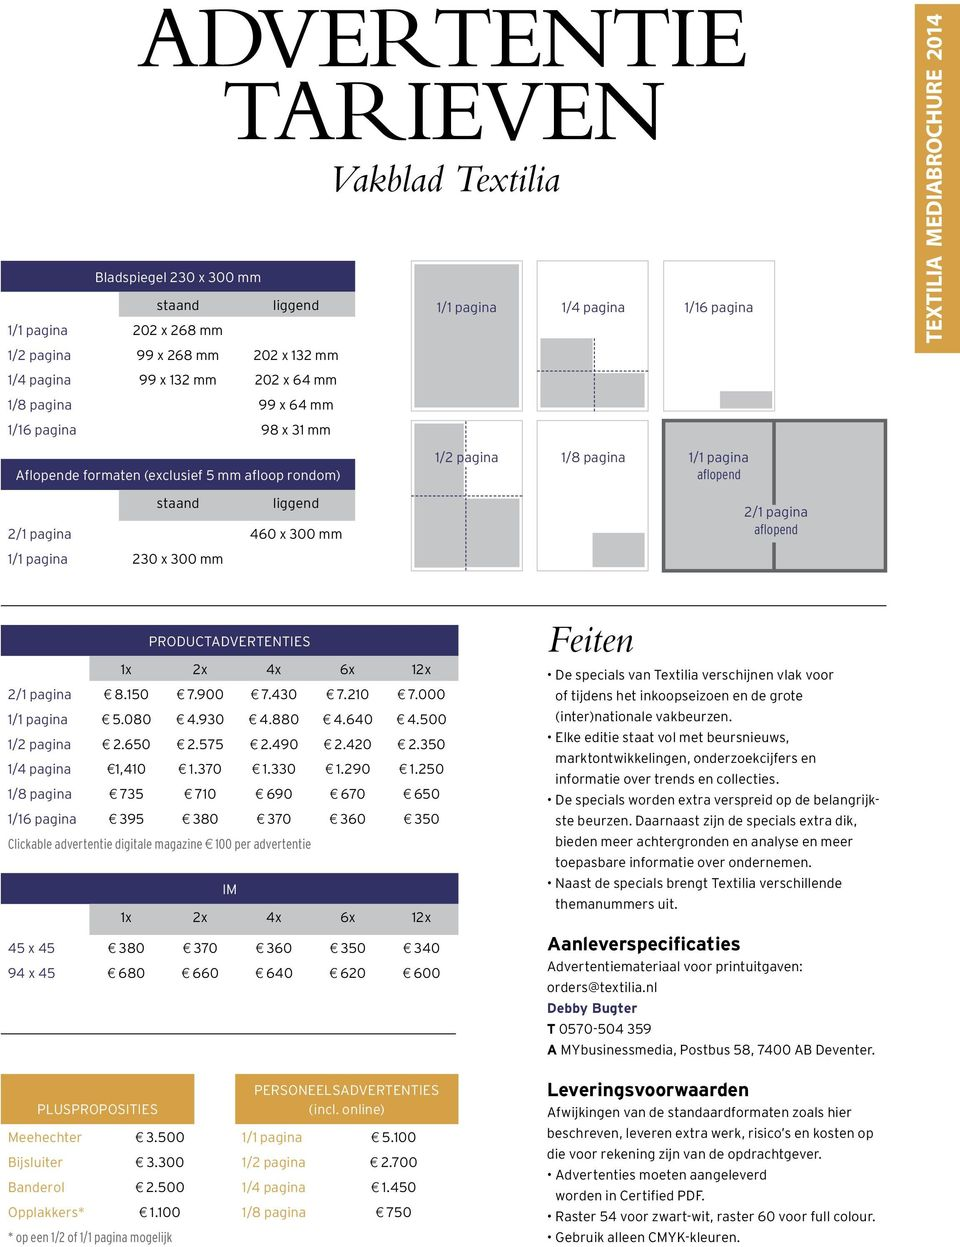 aflopend 1/1 pagina 230 x 300 mm PRODUCTADVERTENTIES 1x 2x 4x 6x 12x 2/1 pagina 8.150 7.900 7.430 7.210 7.000 1/1 pagina 5.080 4.930 4.880 4.640 4.500 1/2 pagina 2.650 2.575 2.490 2.420 2.